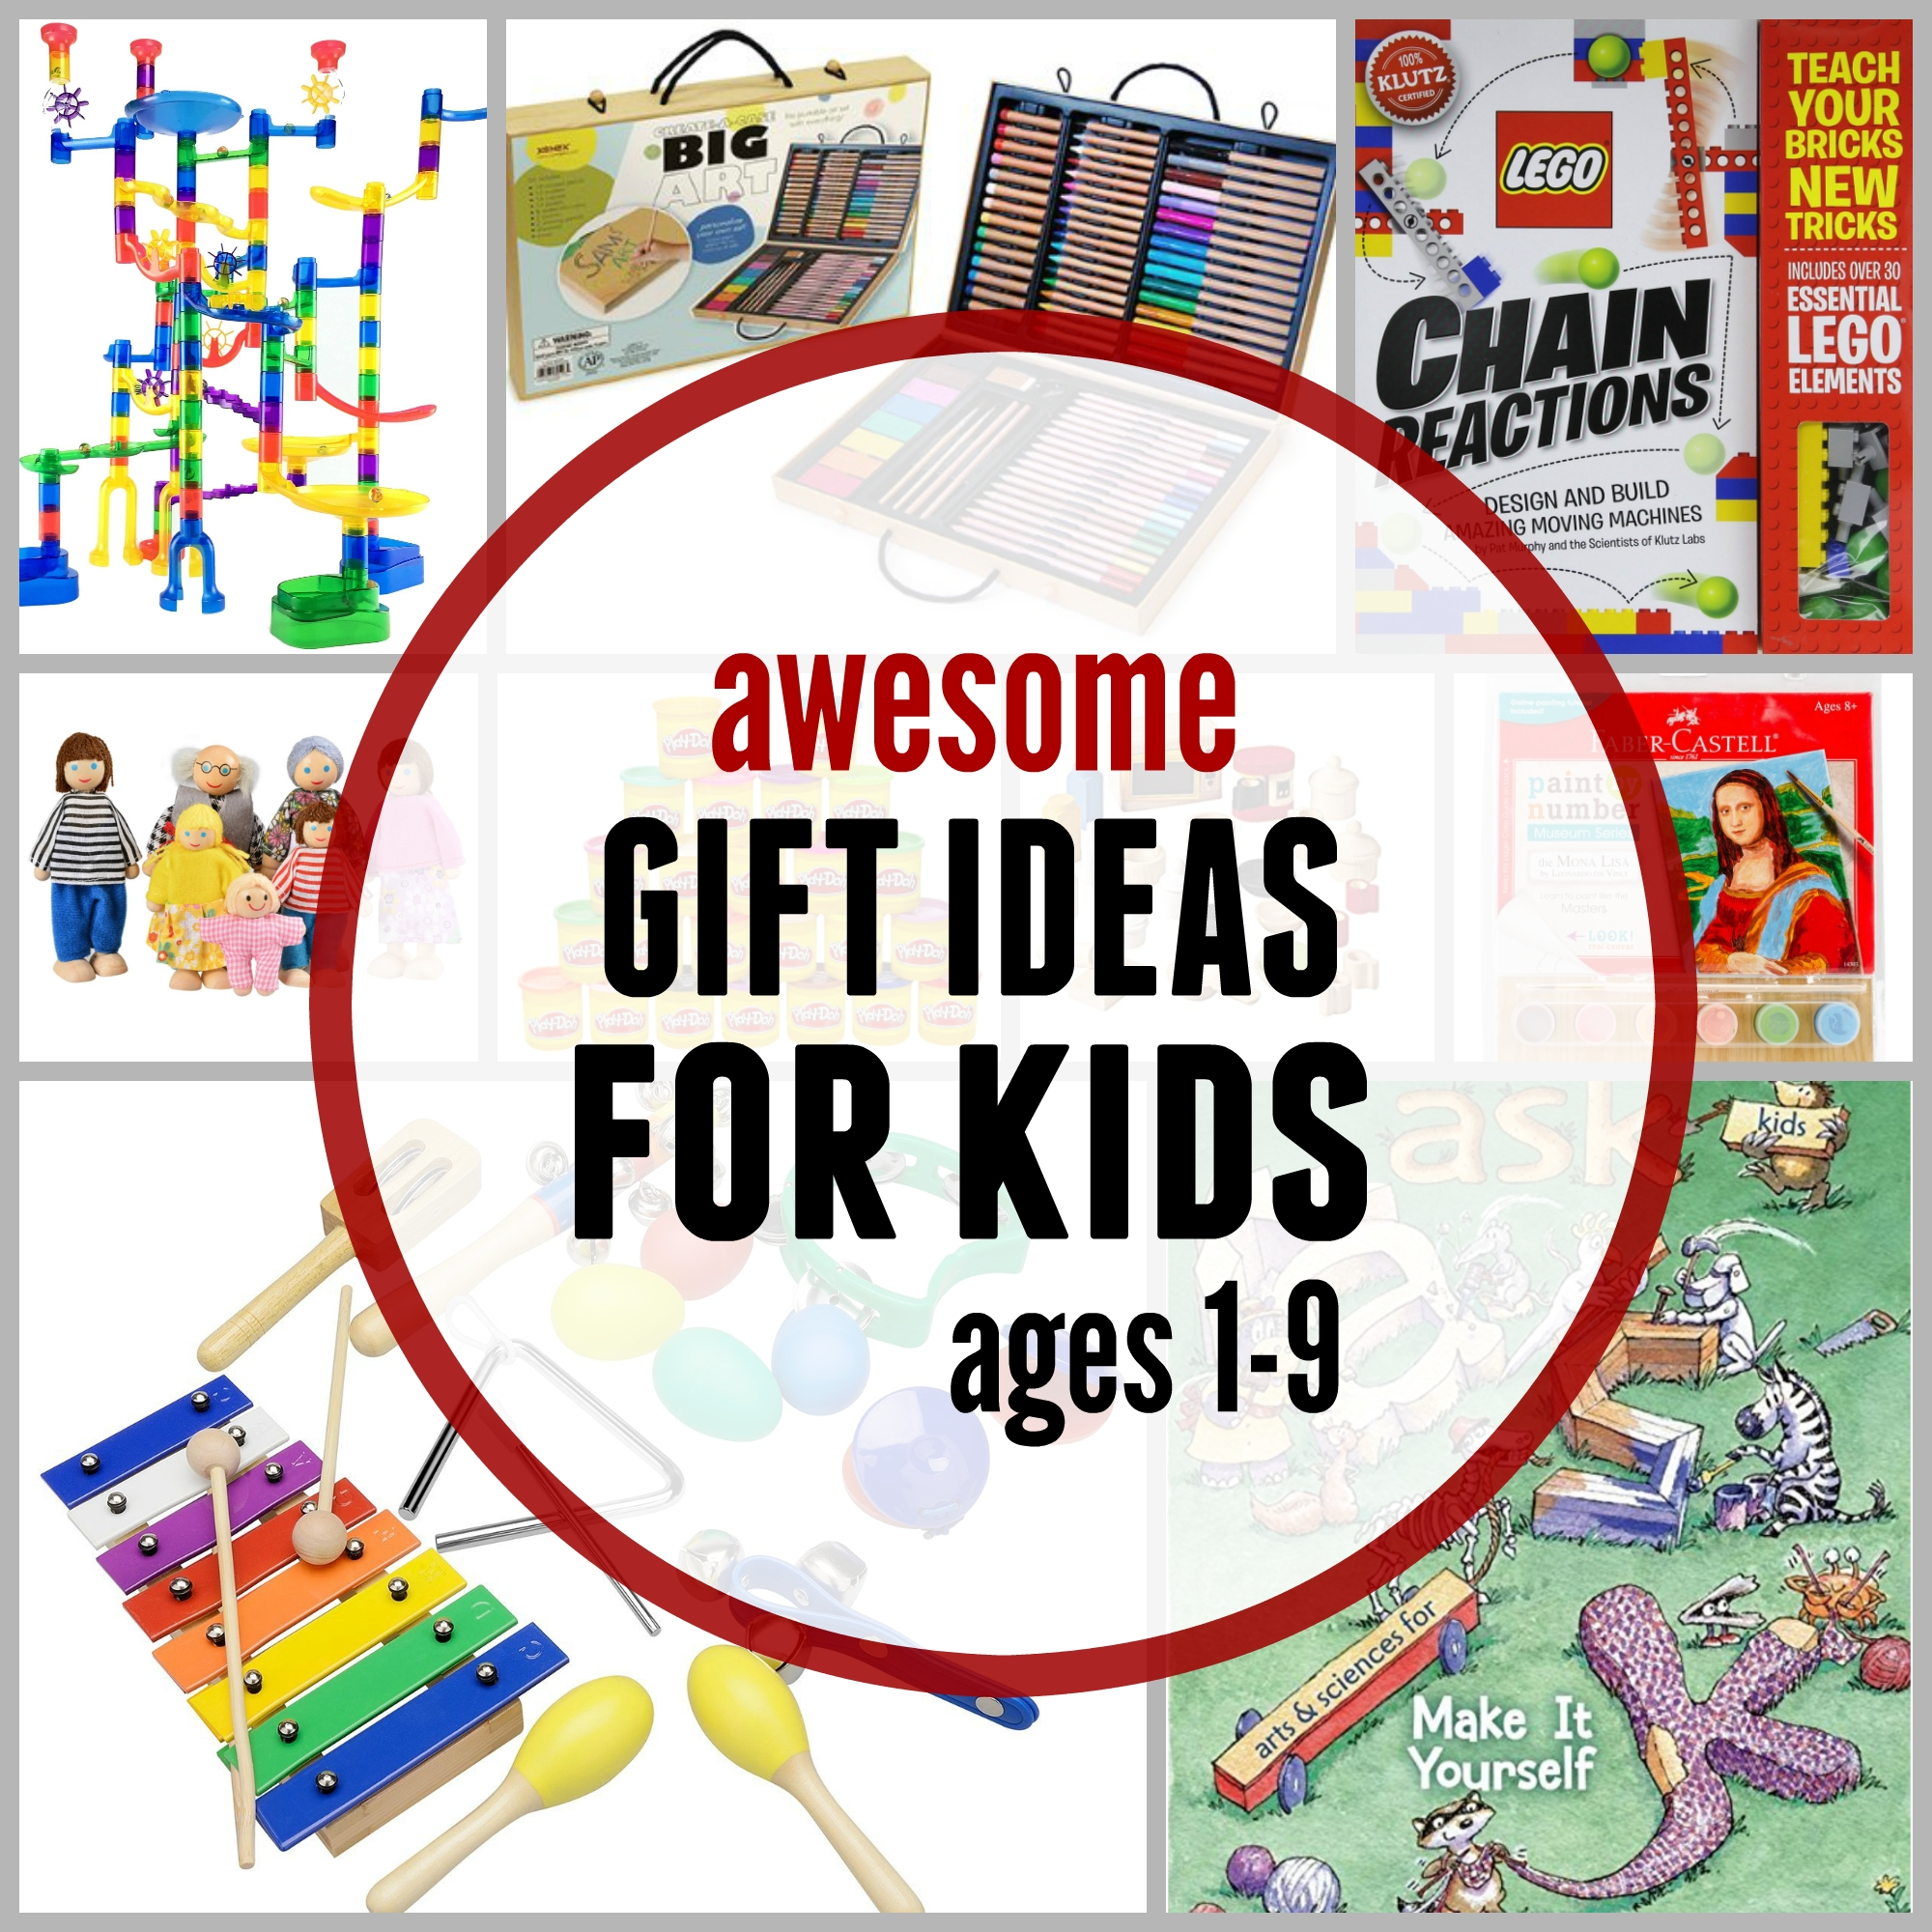 35 awesome gift ideas for kids - the measured mom